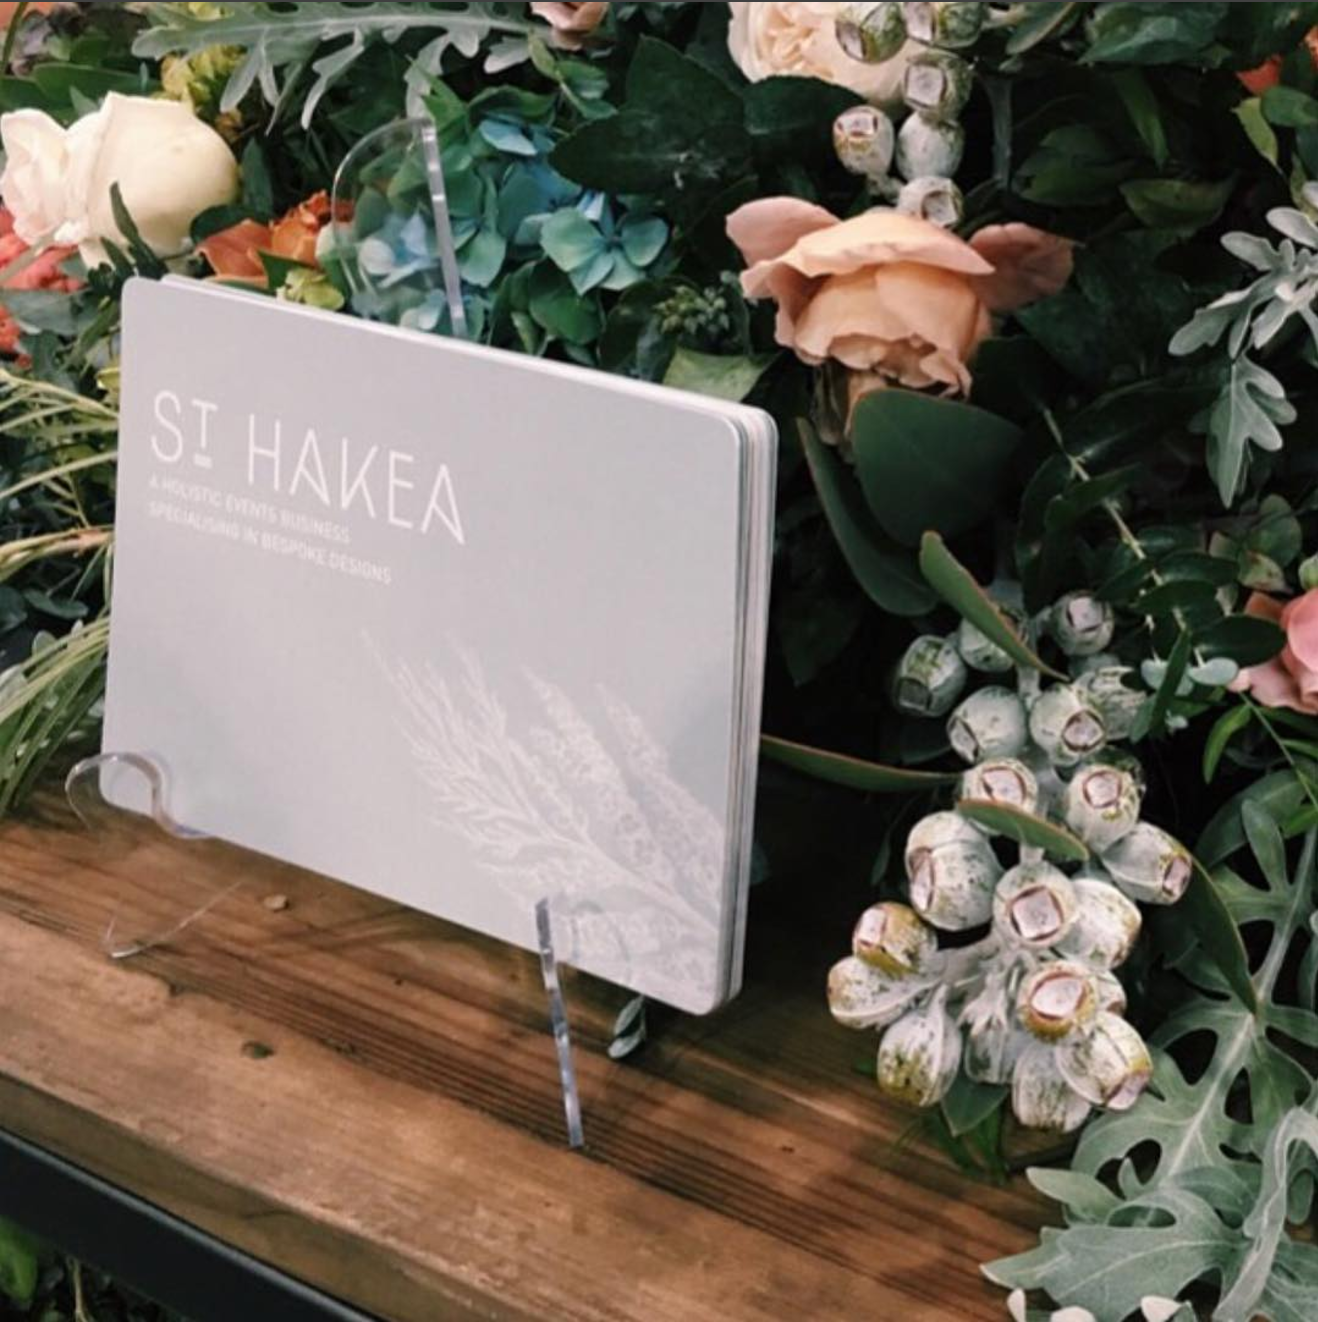 St Hakea  EVENT COLLATERAL